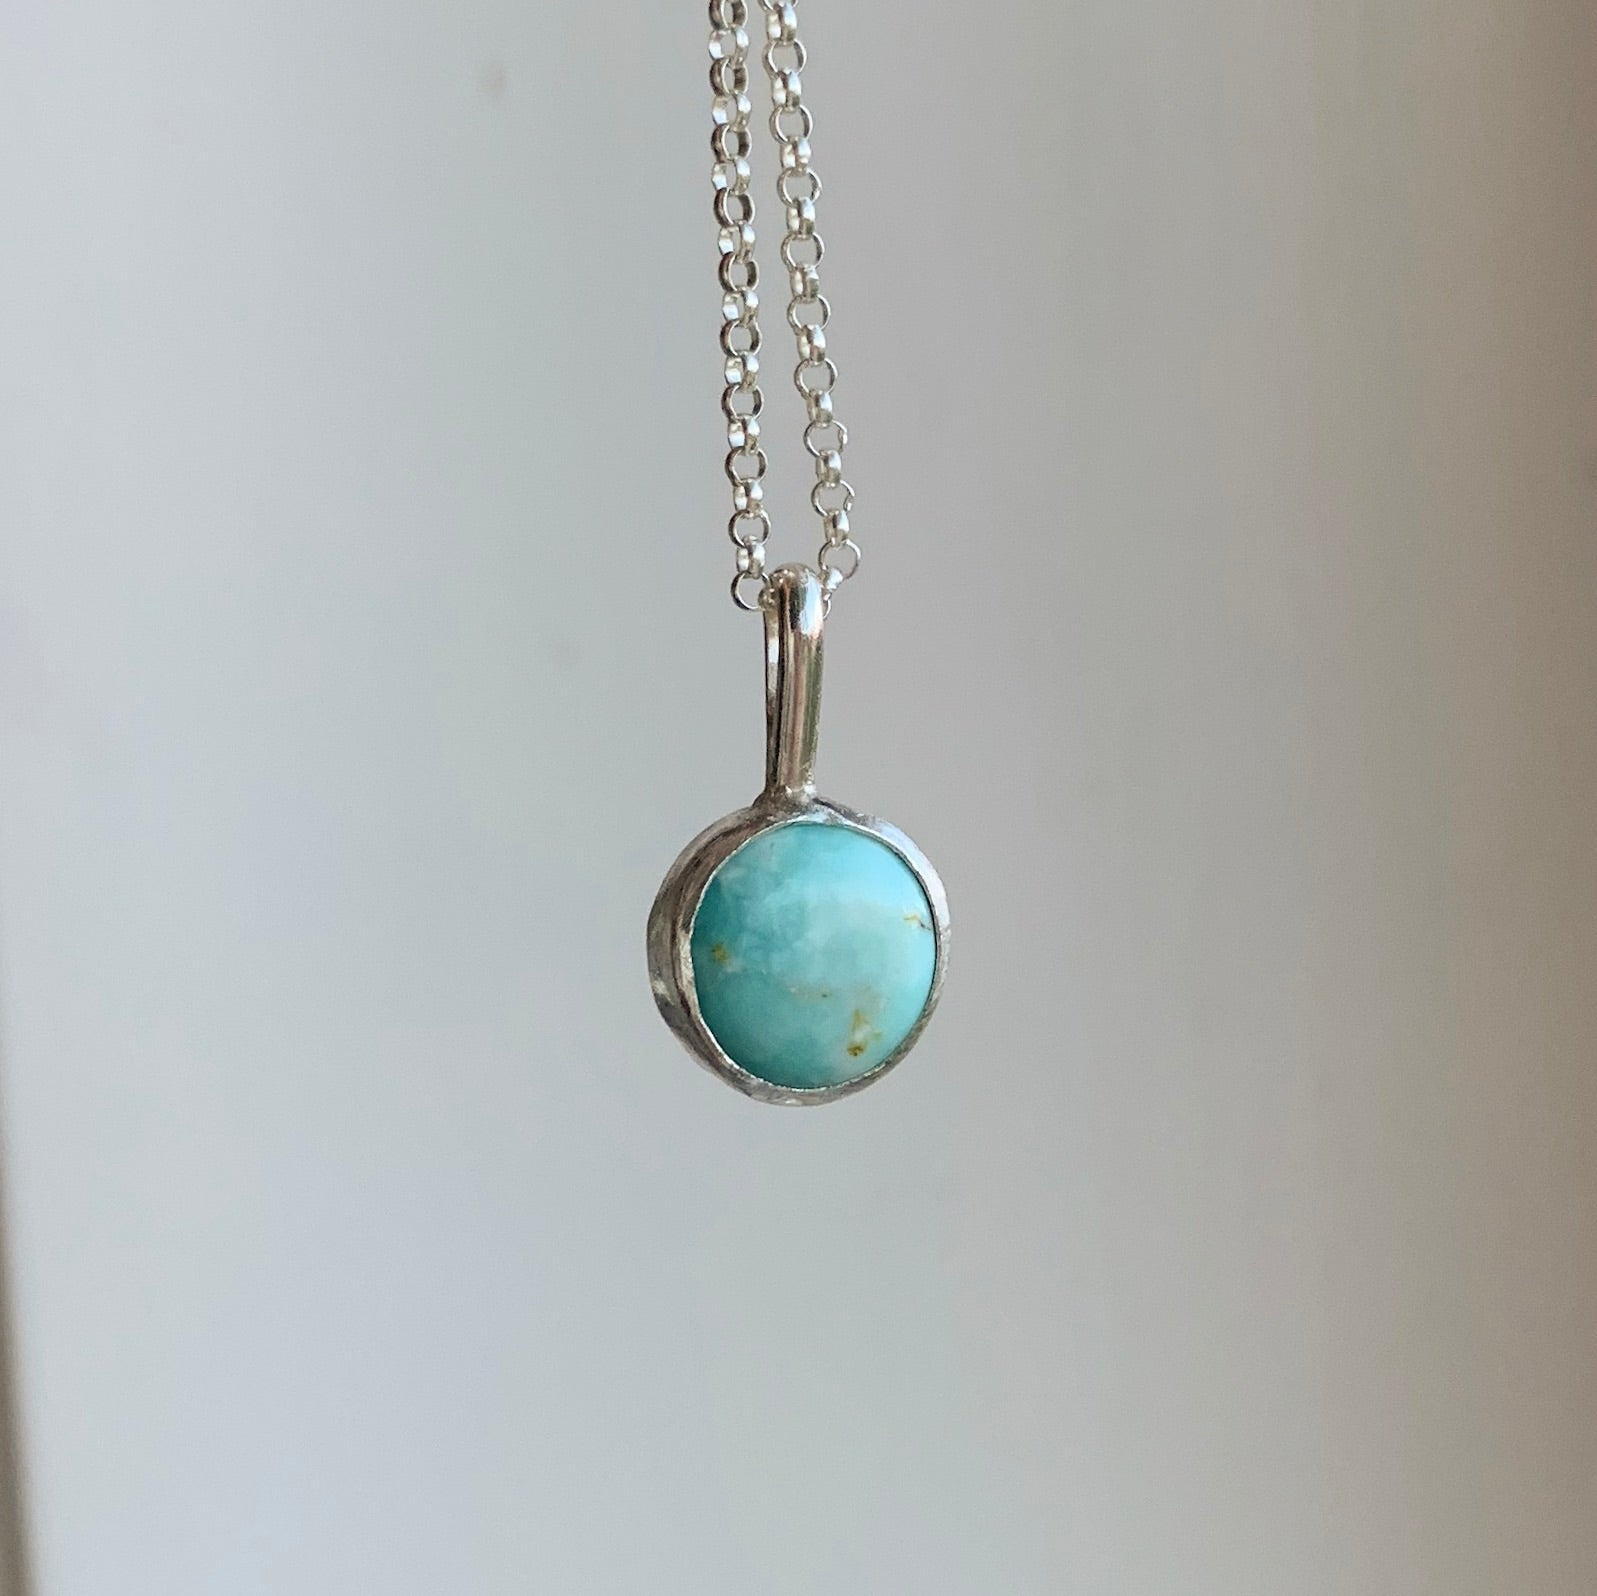 Round necklace - silver